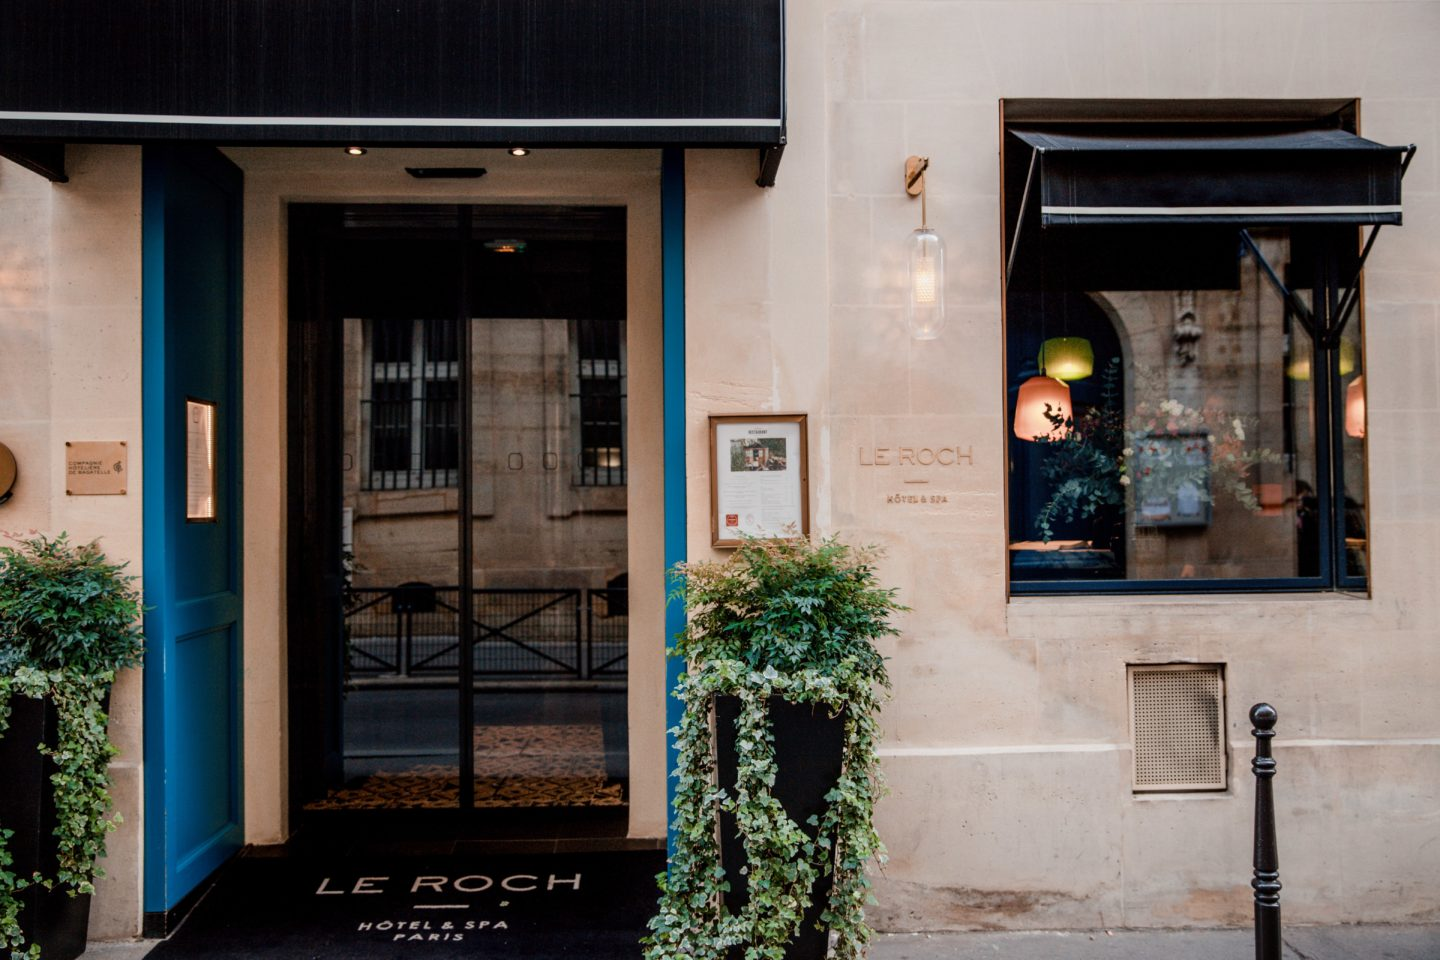 Staying At Hotel Le Roch In Paris France Chic Boutique 5 Star Hotel